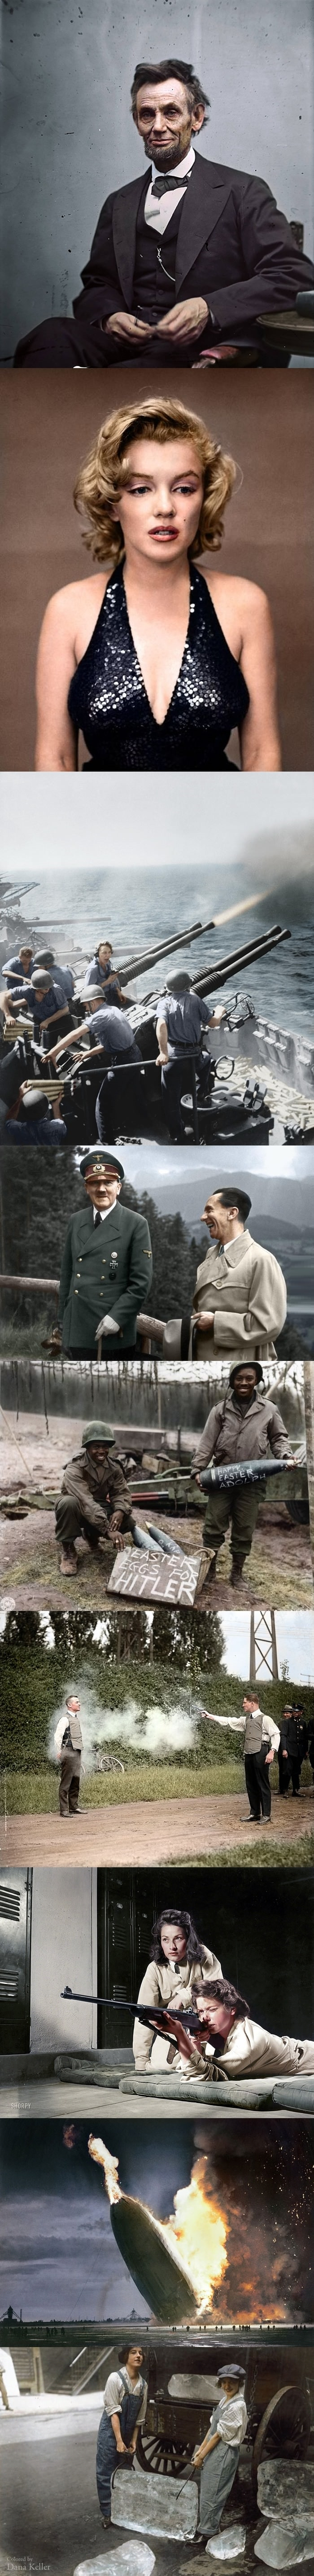 History in colour